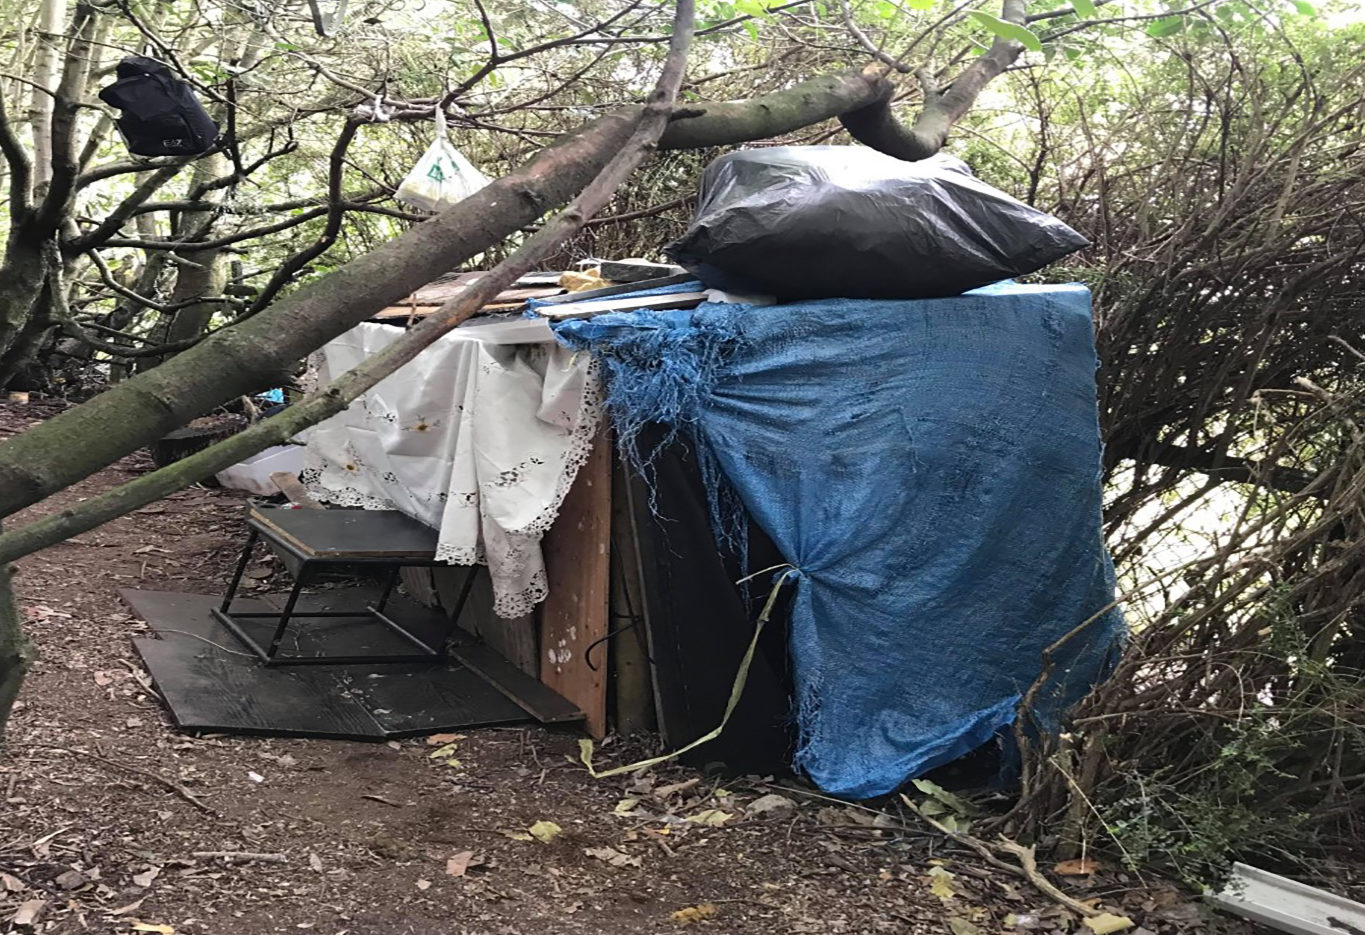 The man's woodland home after he fell out of employment